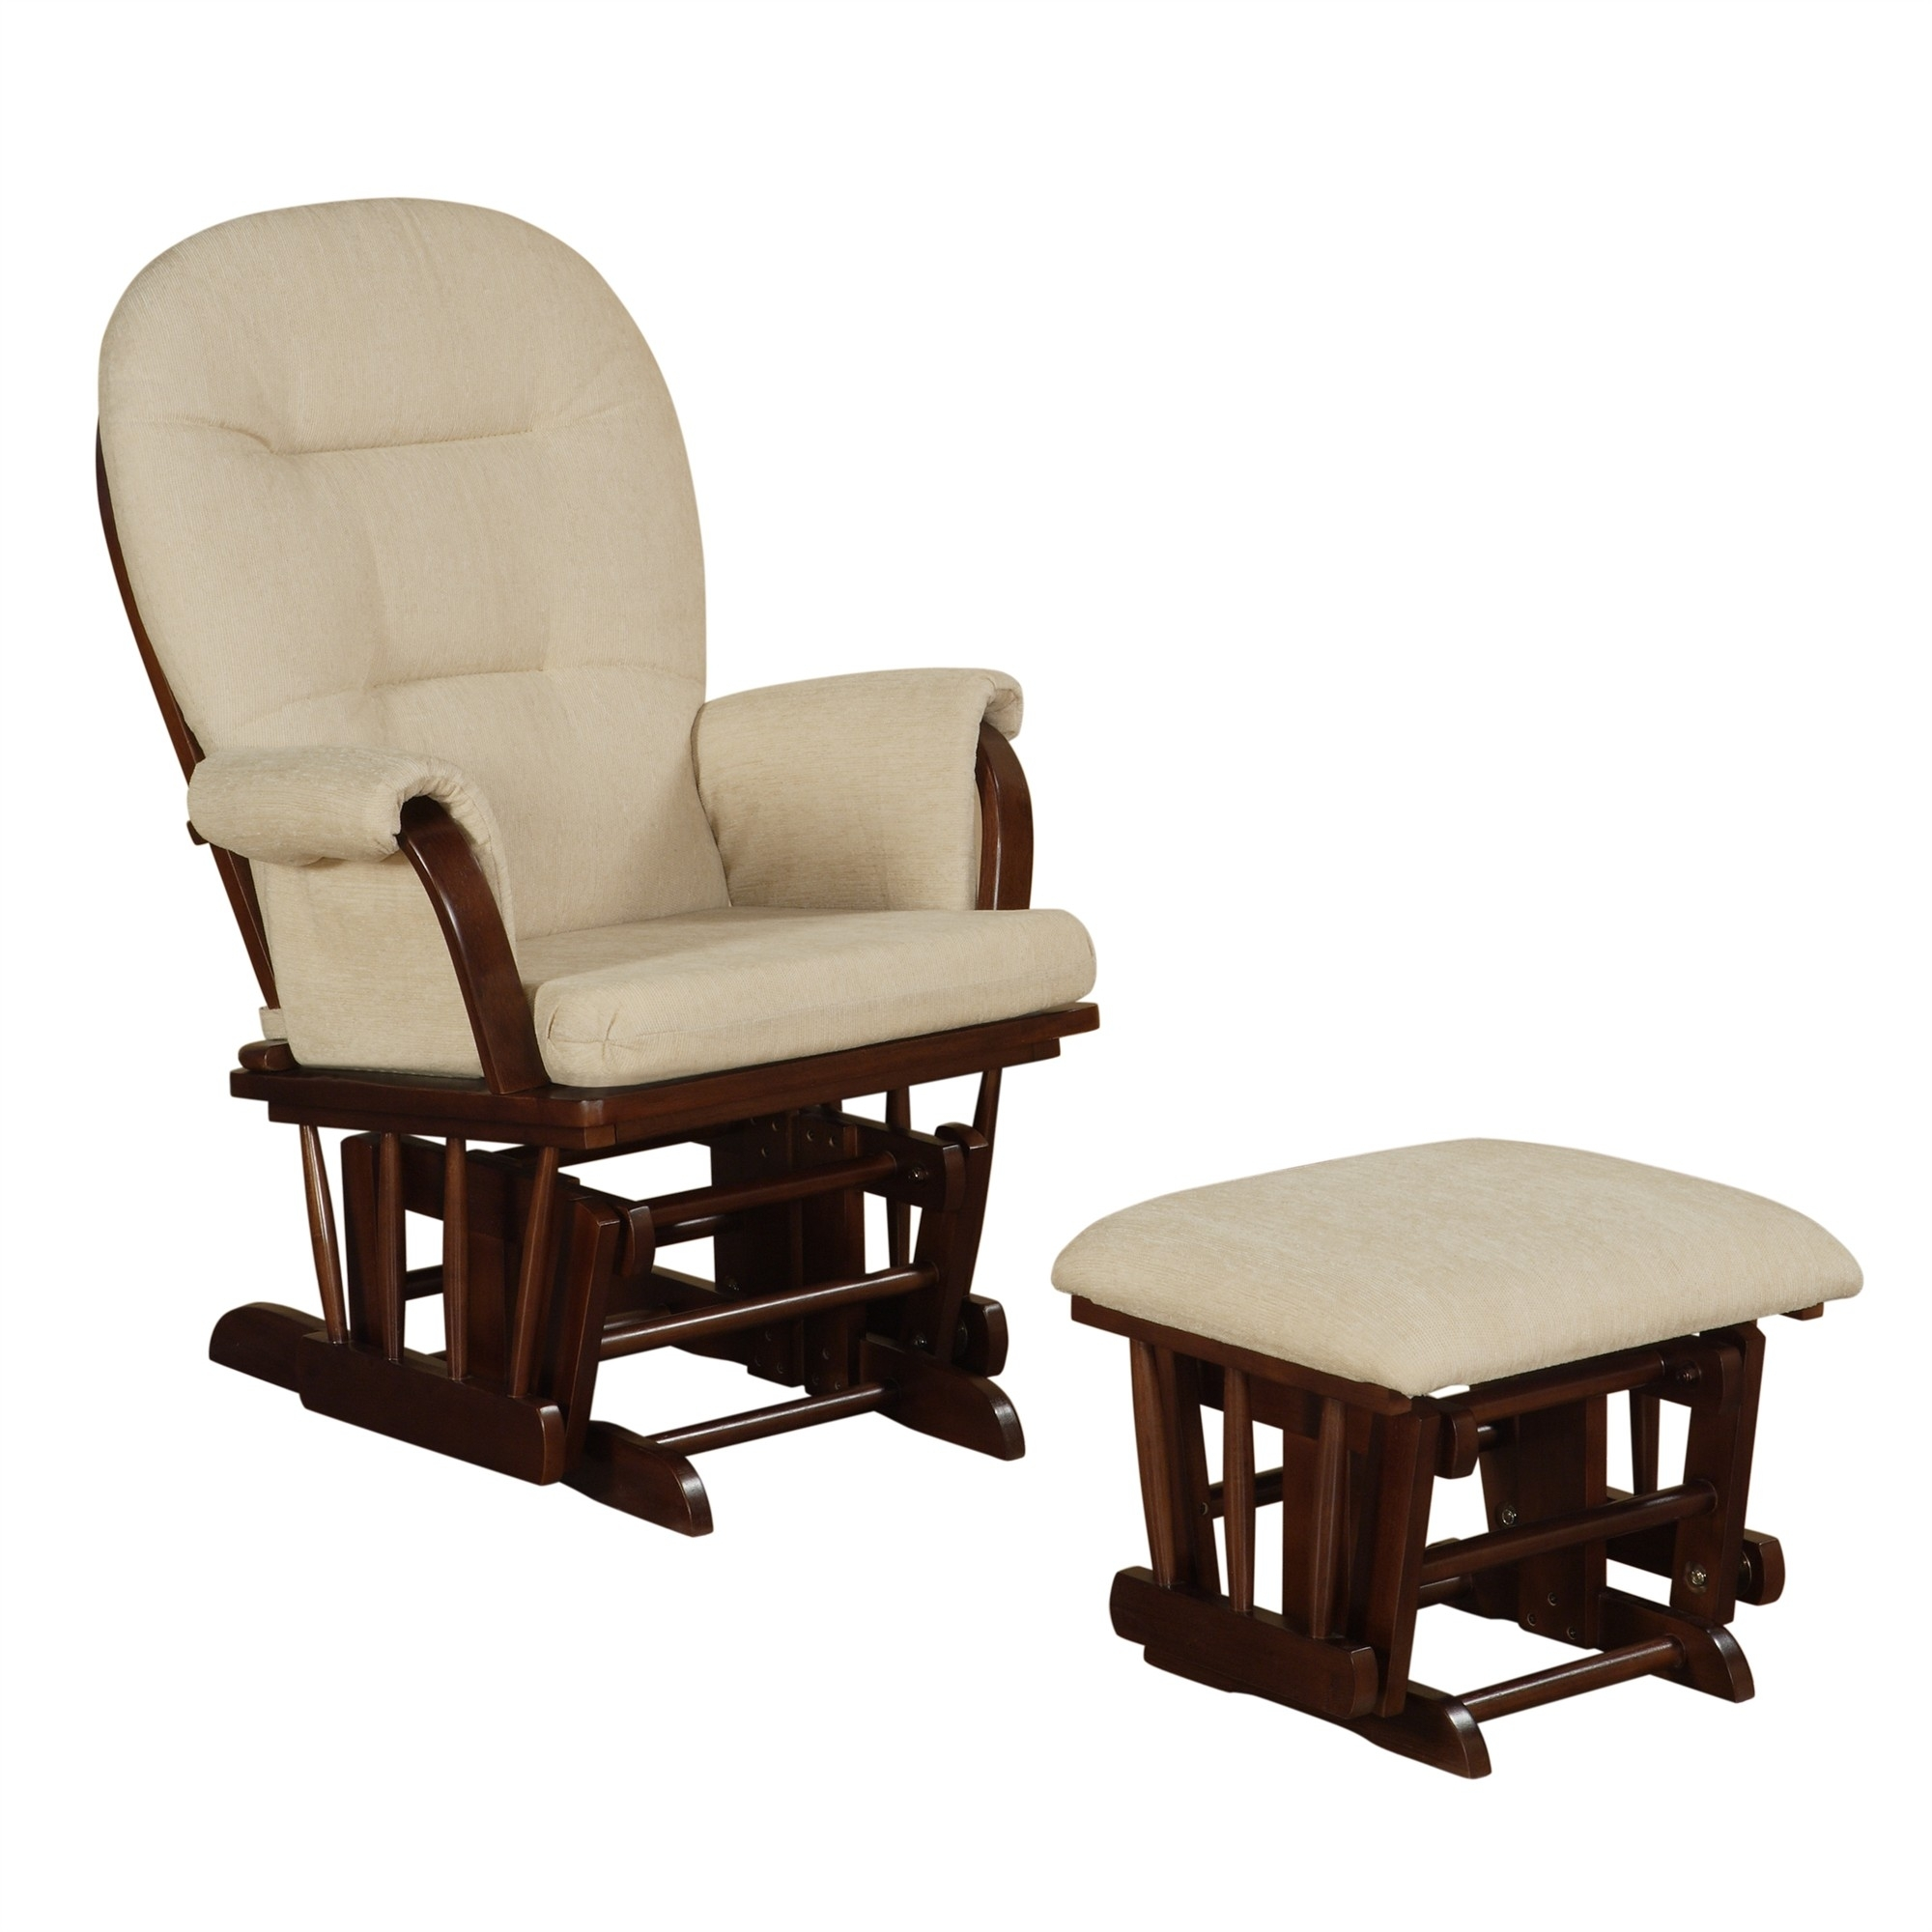 Inspiration about Rocking Chair Glider Nursery Gus Modern Sparrow Glider Regarding Rocking Chairs With Ottoman (#1 of 15)